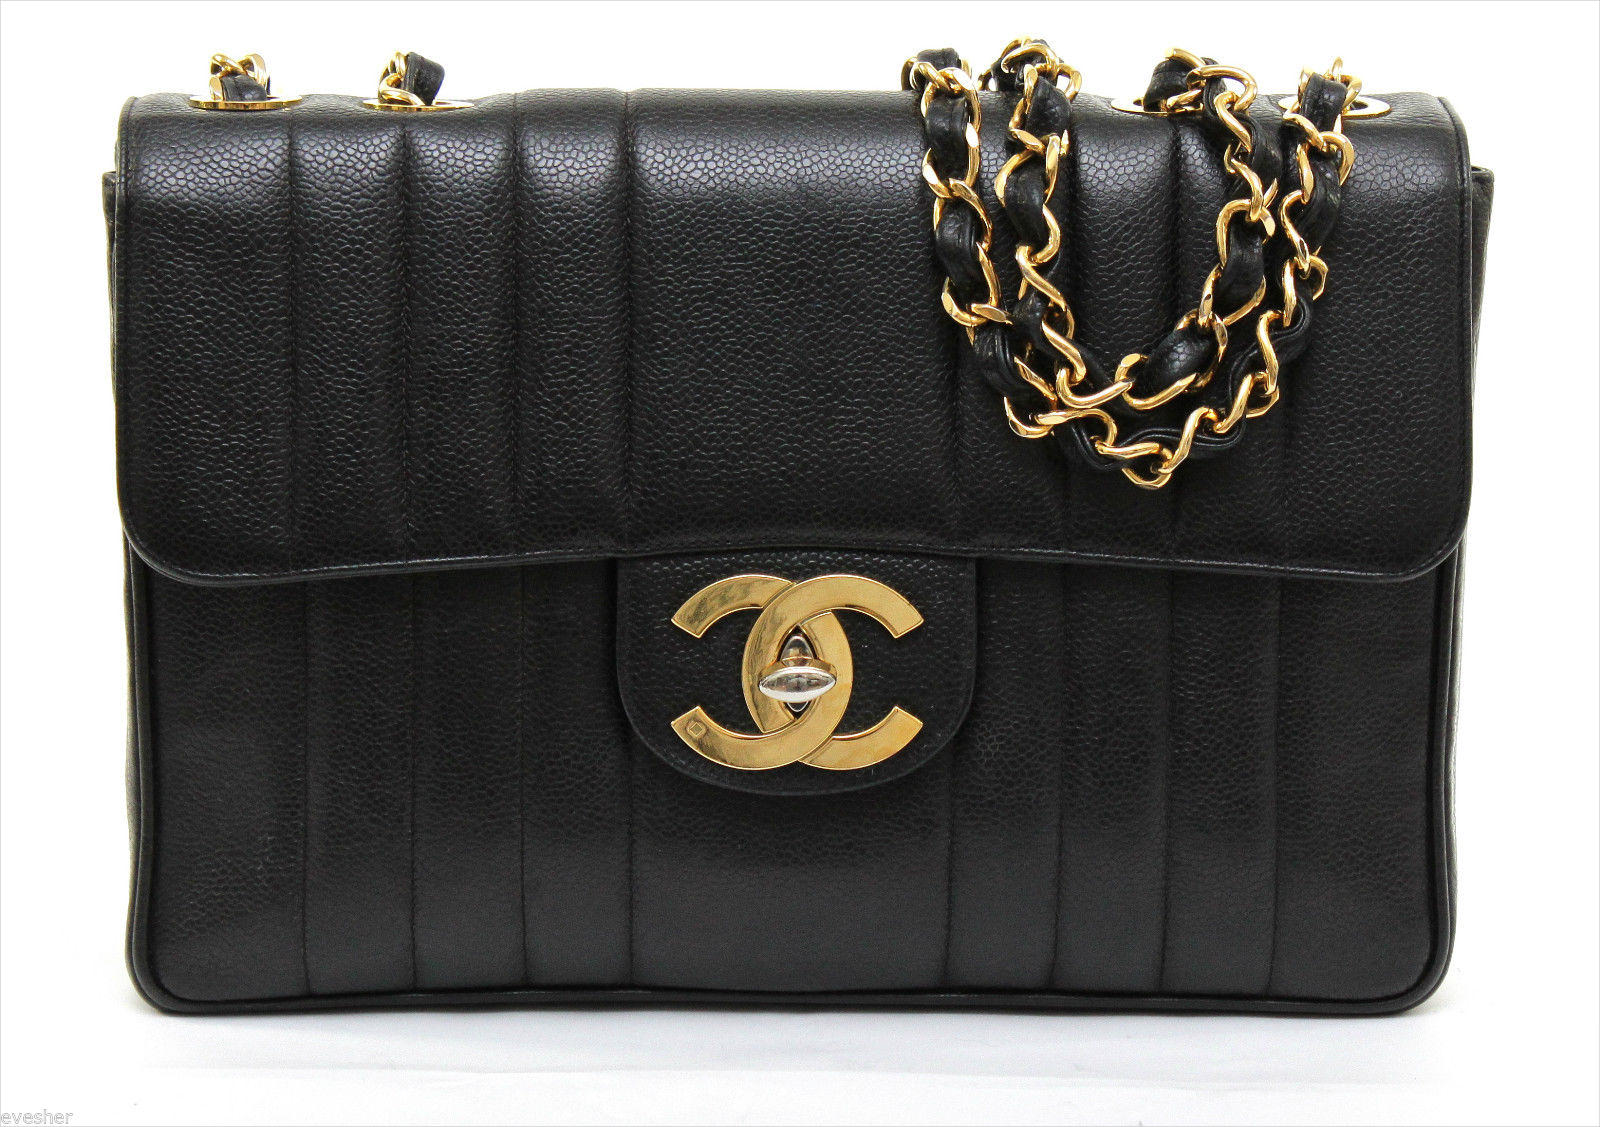 Chanel Leather Skin Bag